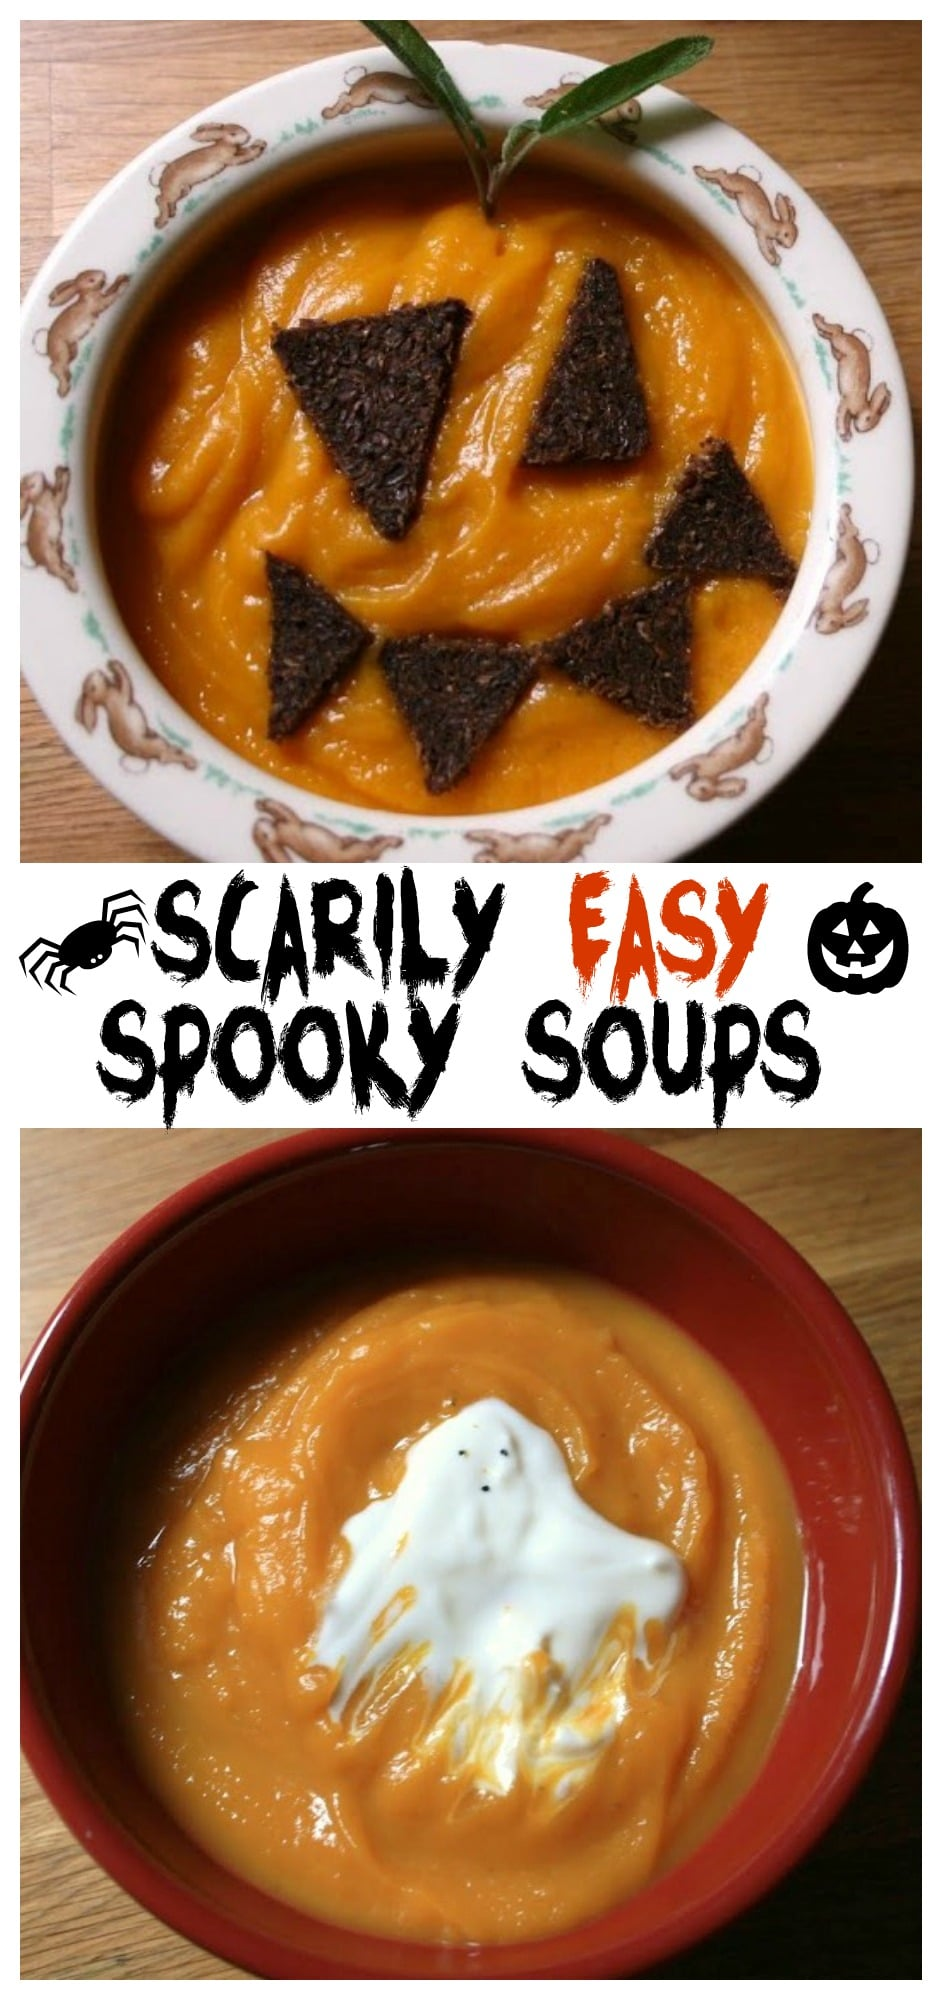 Healthy Spooky Meal for Halloween